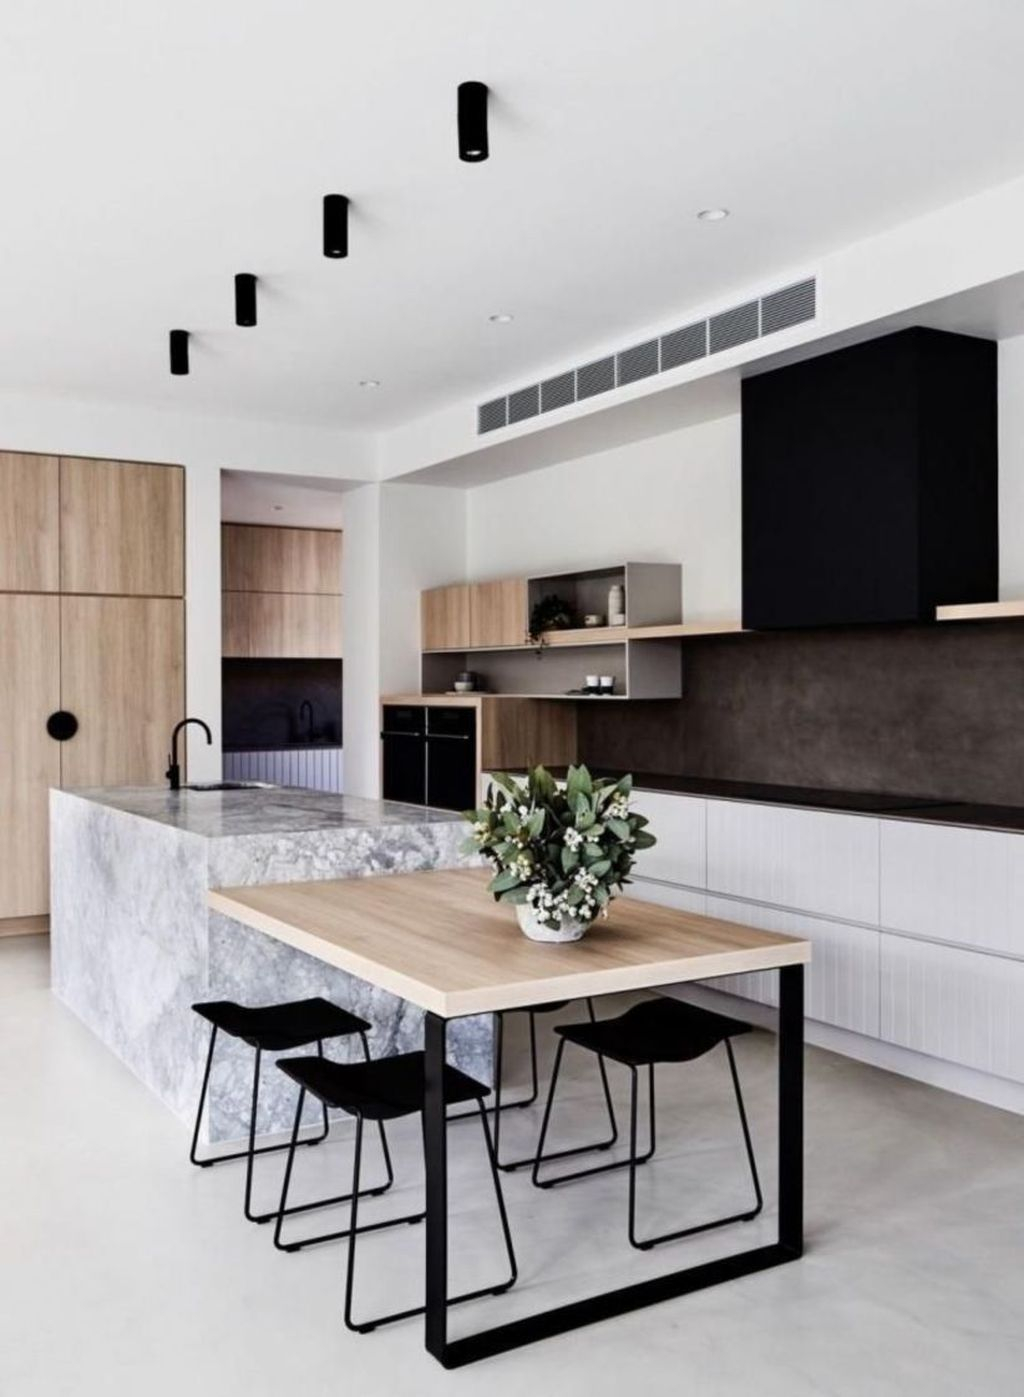 Elegant Minimalist Kitchen Design Ideas For Small Space To Try 07